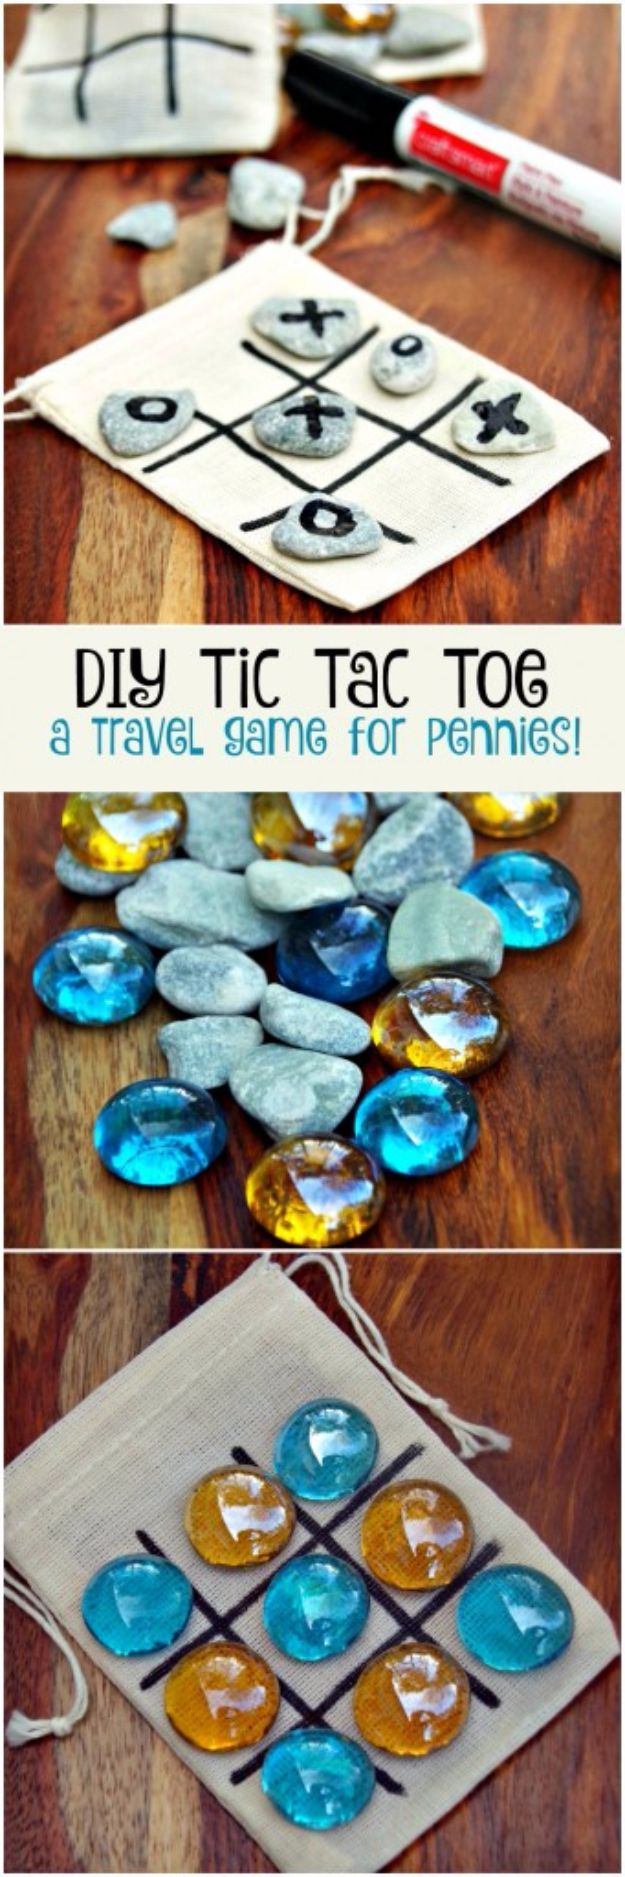 39 Easiest Dollar Store Crafts Ever - DIY Tic Tac Toe Game Board - Quick And Cheap Crafts To Make, Dollar Store Craft Ideas To Make And Sell!